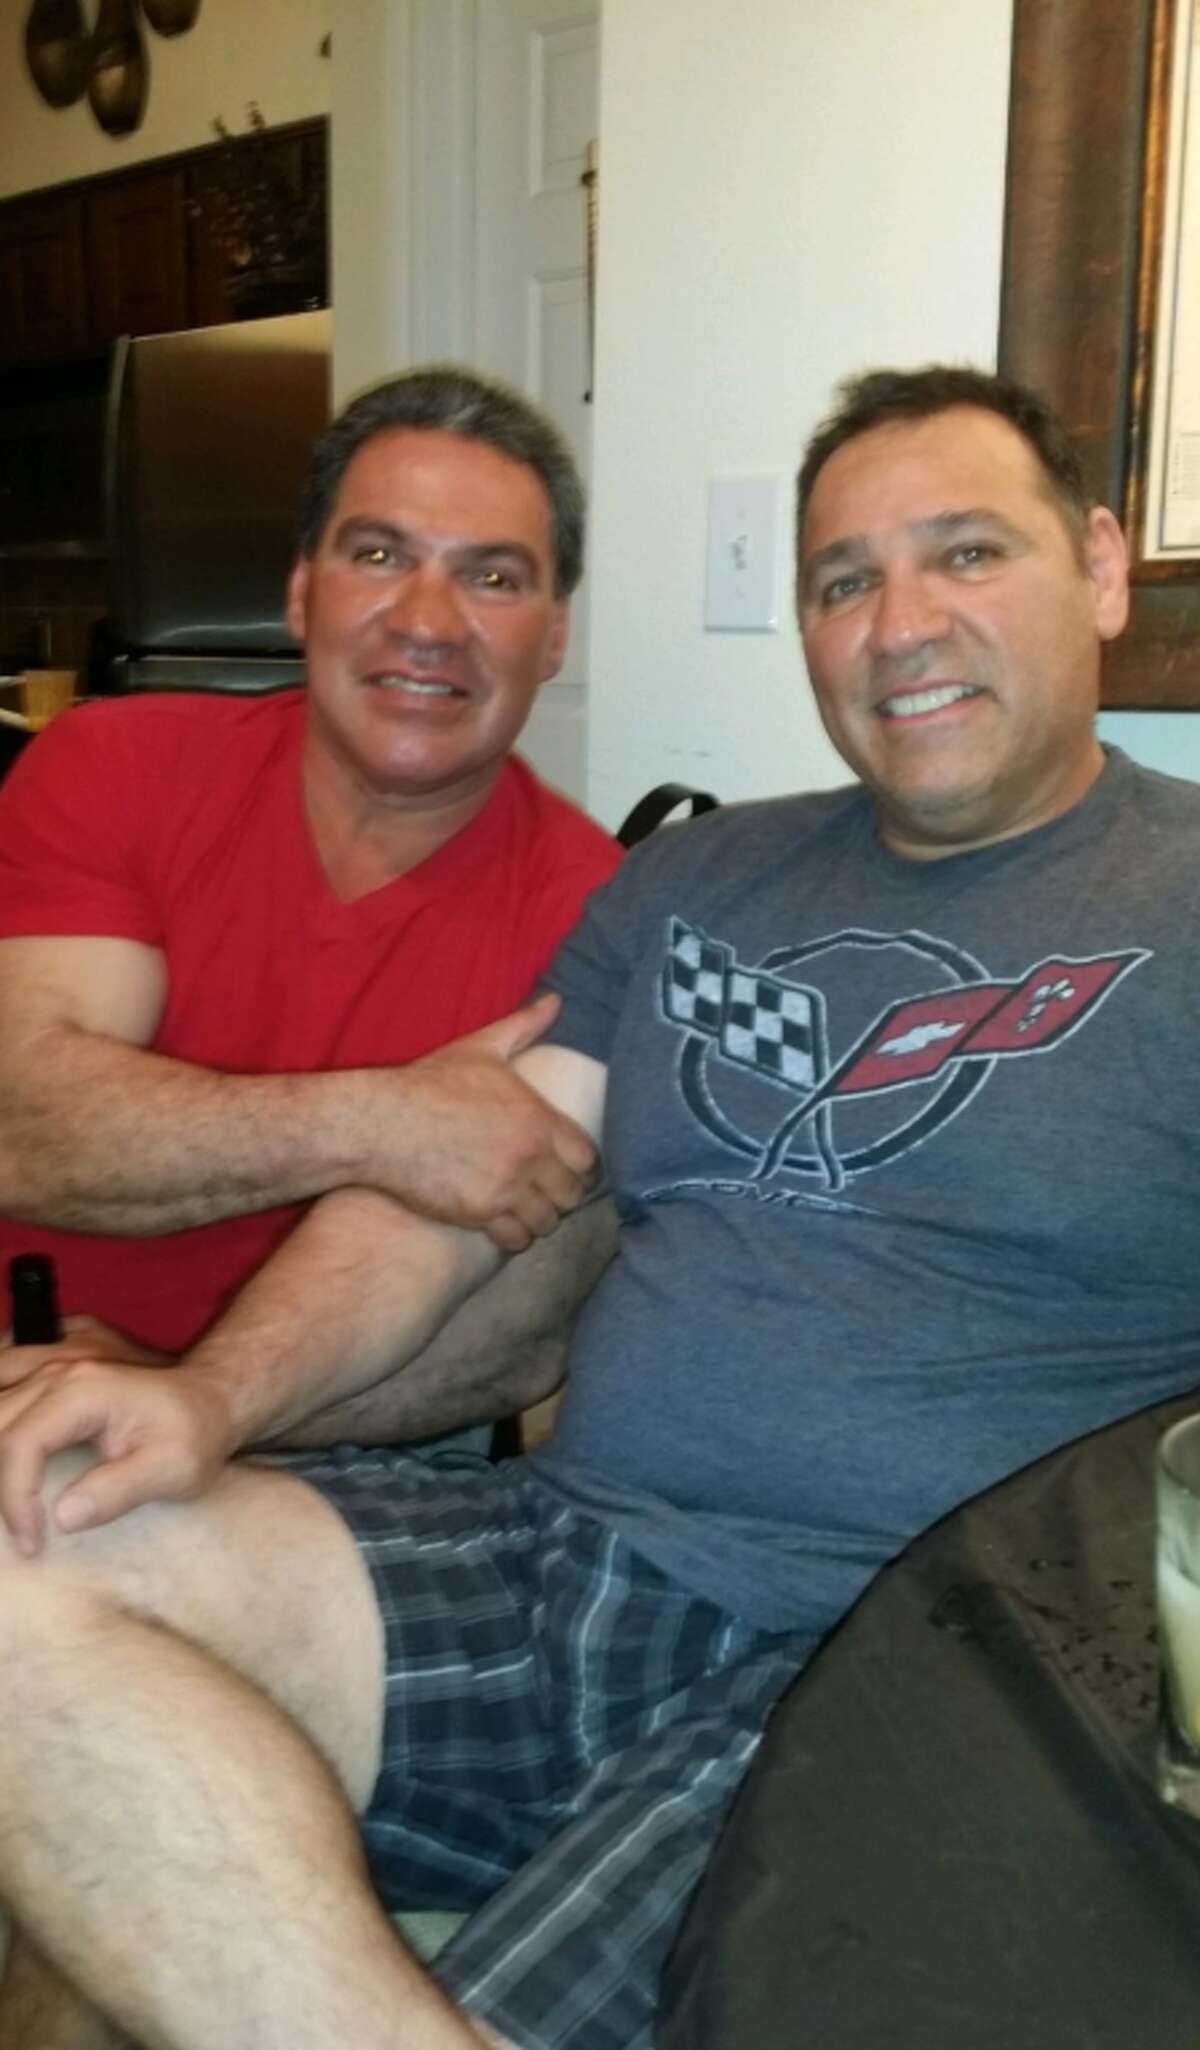 Luis Robles (left), a 56-year-old Pasadena man, was killed last week after an alleged drunk driver crashed into his car. He was described by his brother Robert (right) as a man who enjoyed simply pleasures, like watching football and arm wrestling with family.